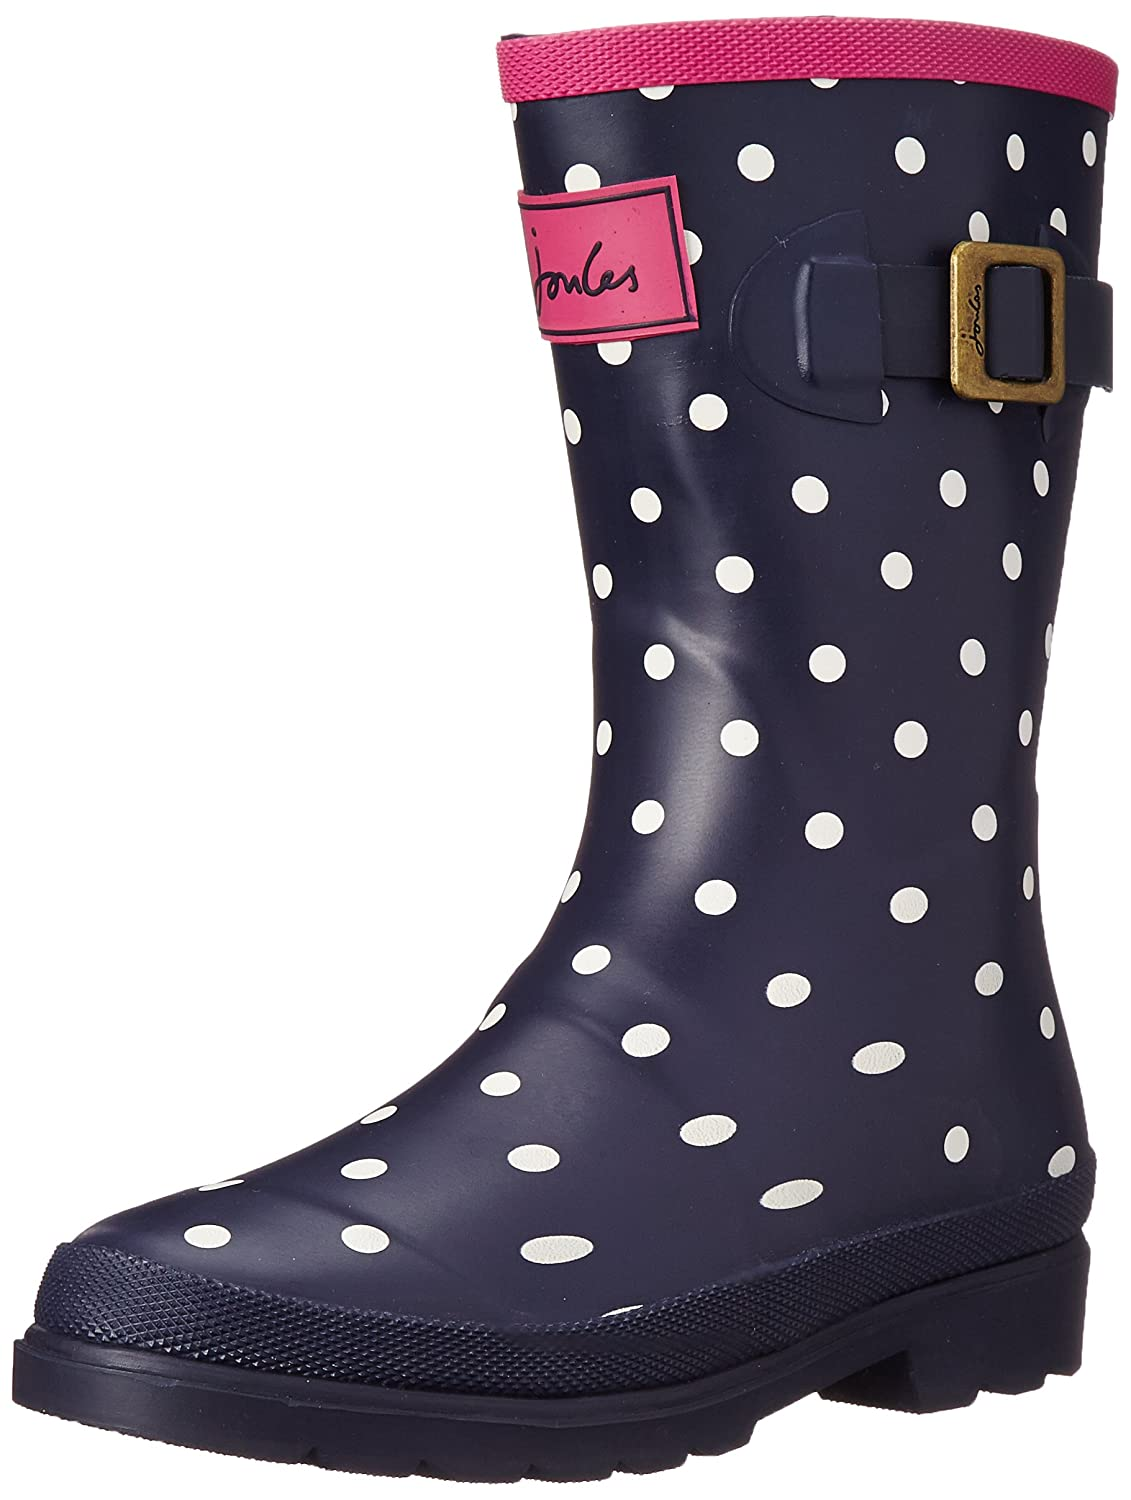 Joules T_JNR Girls Welly Boot (Toddler/Little Kid/Big Kid) T_JNRGIRLSWELLY - K